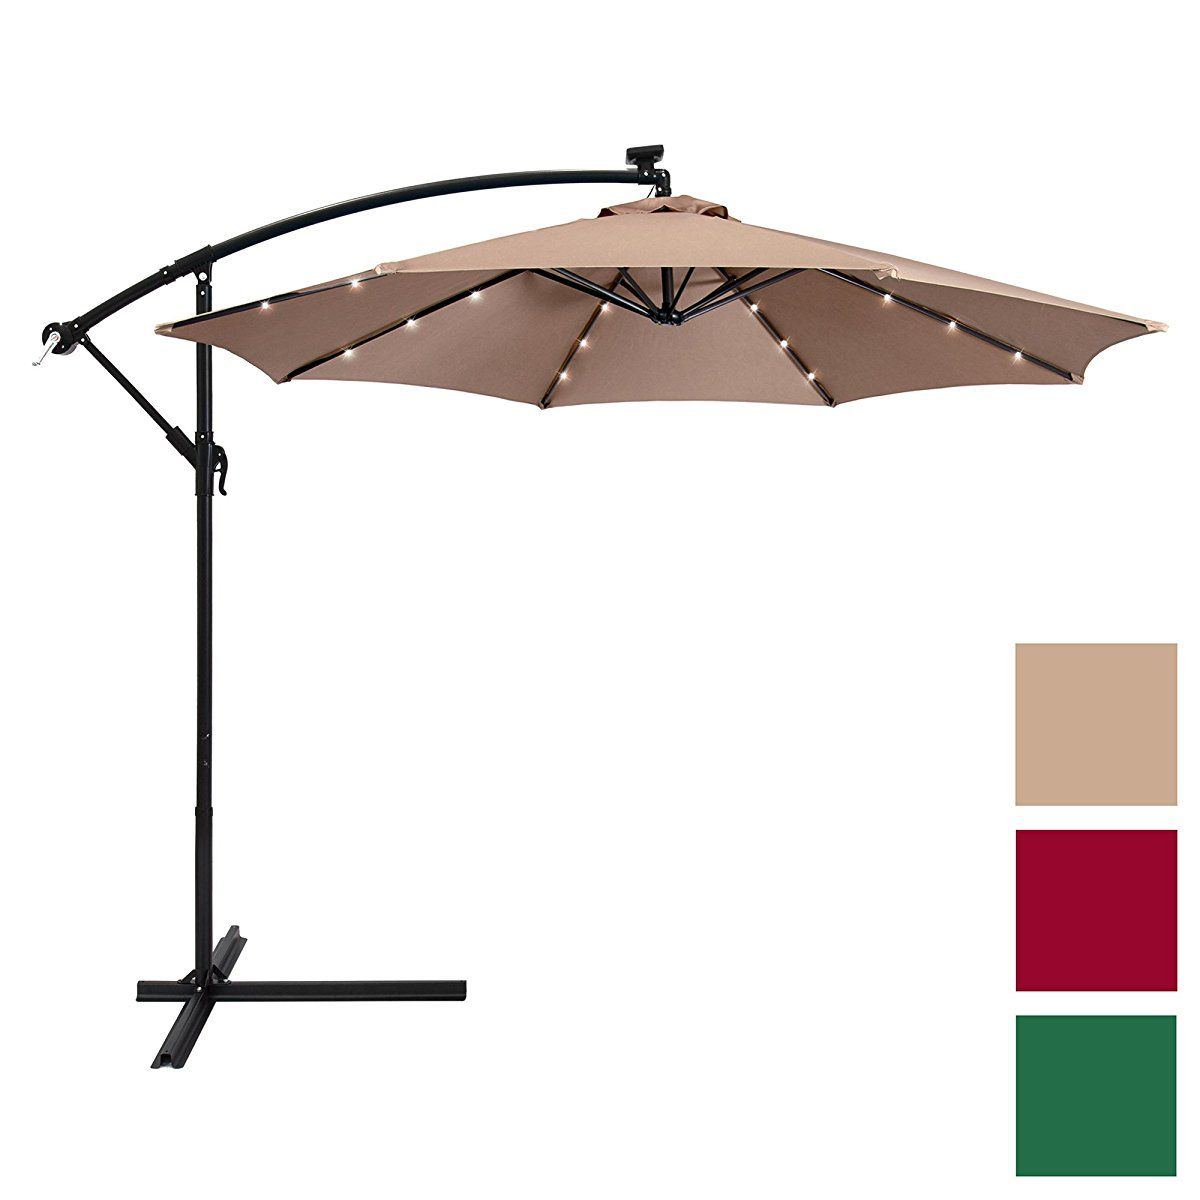 Best Choice Products 10ft Solar Led Patio Offset Umbrella W Easy Tilt Adjustment Tan Offset Umbrella Offset Patio Umbrella Patio